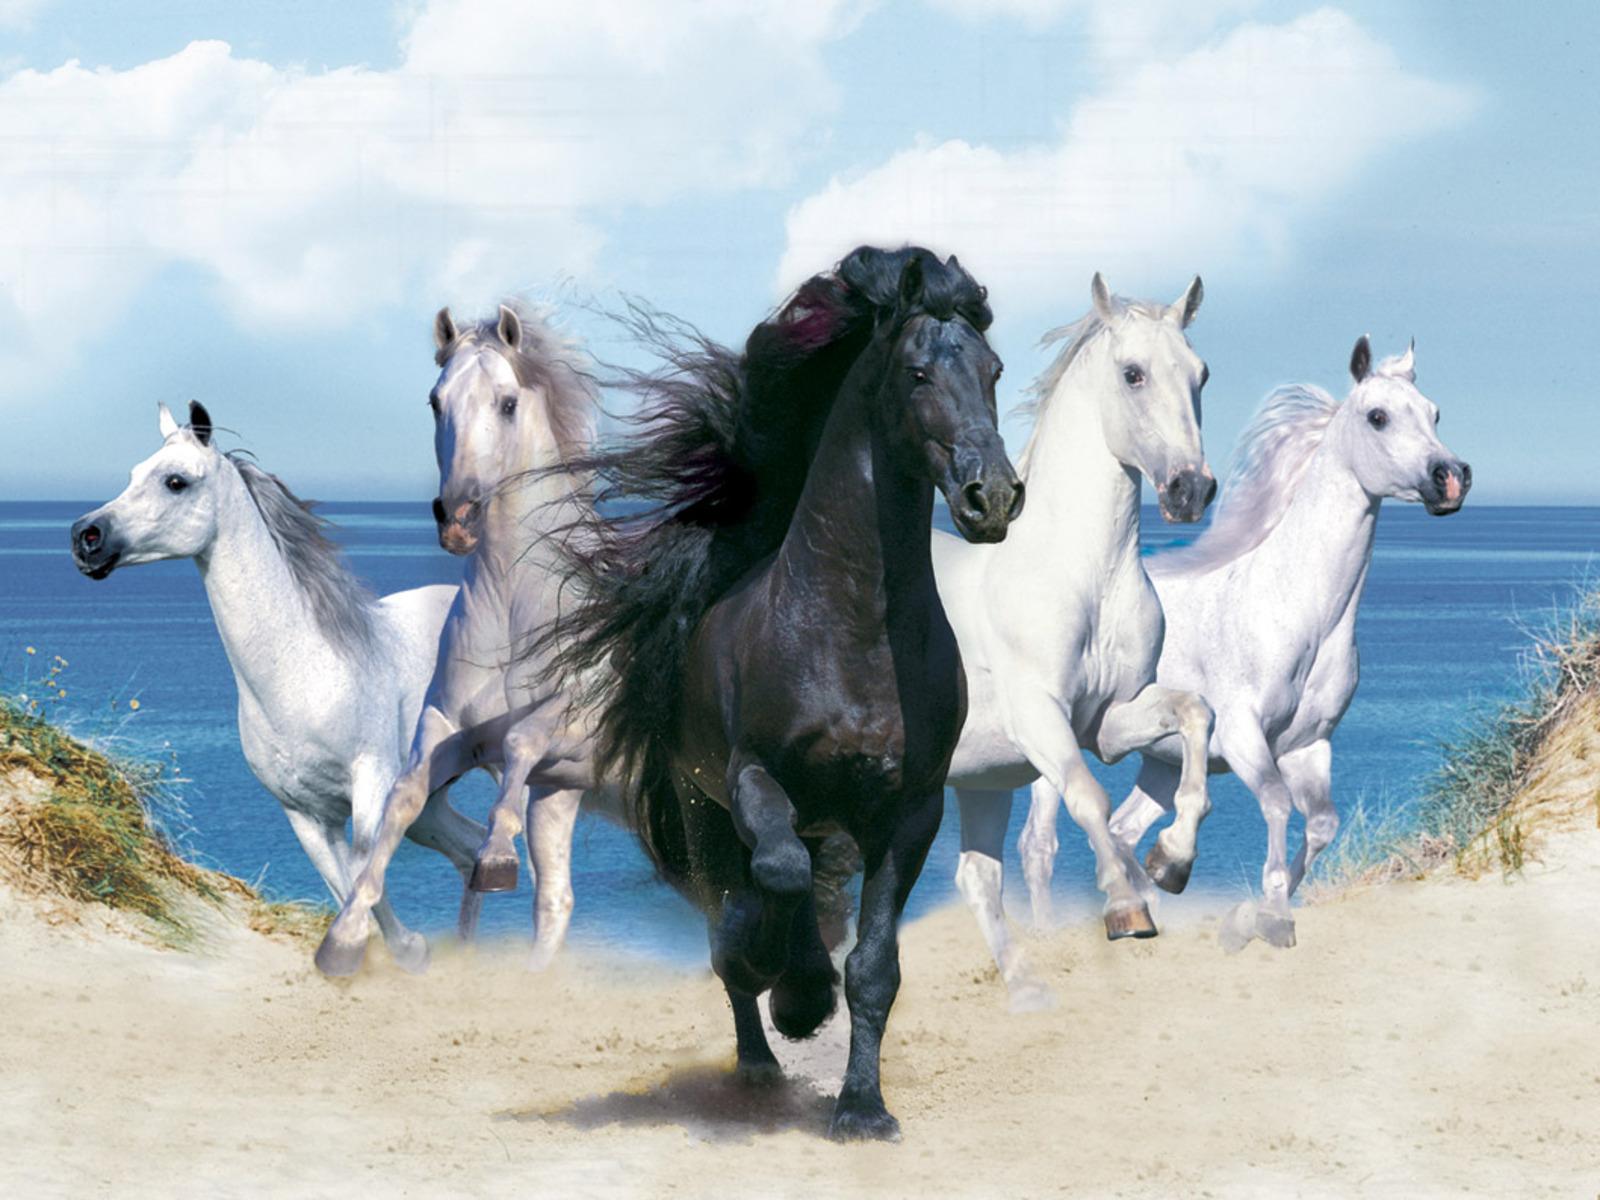 http://4.bp.blogspot.com/-AUY3oodb4yE/T4DA27QSG5I/AAAAAAAAKFs/SXdk96AIJVI/s1600/Animals+Wallpapers+Fantasy+Beautiful+Horses.jpg